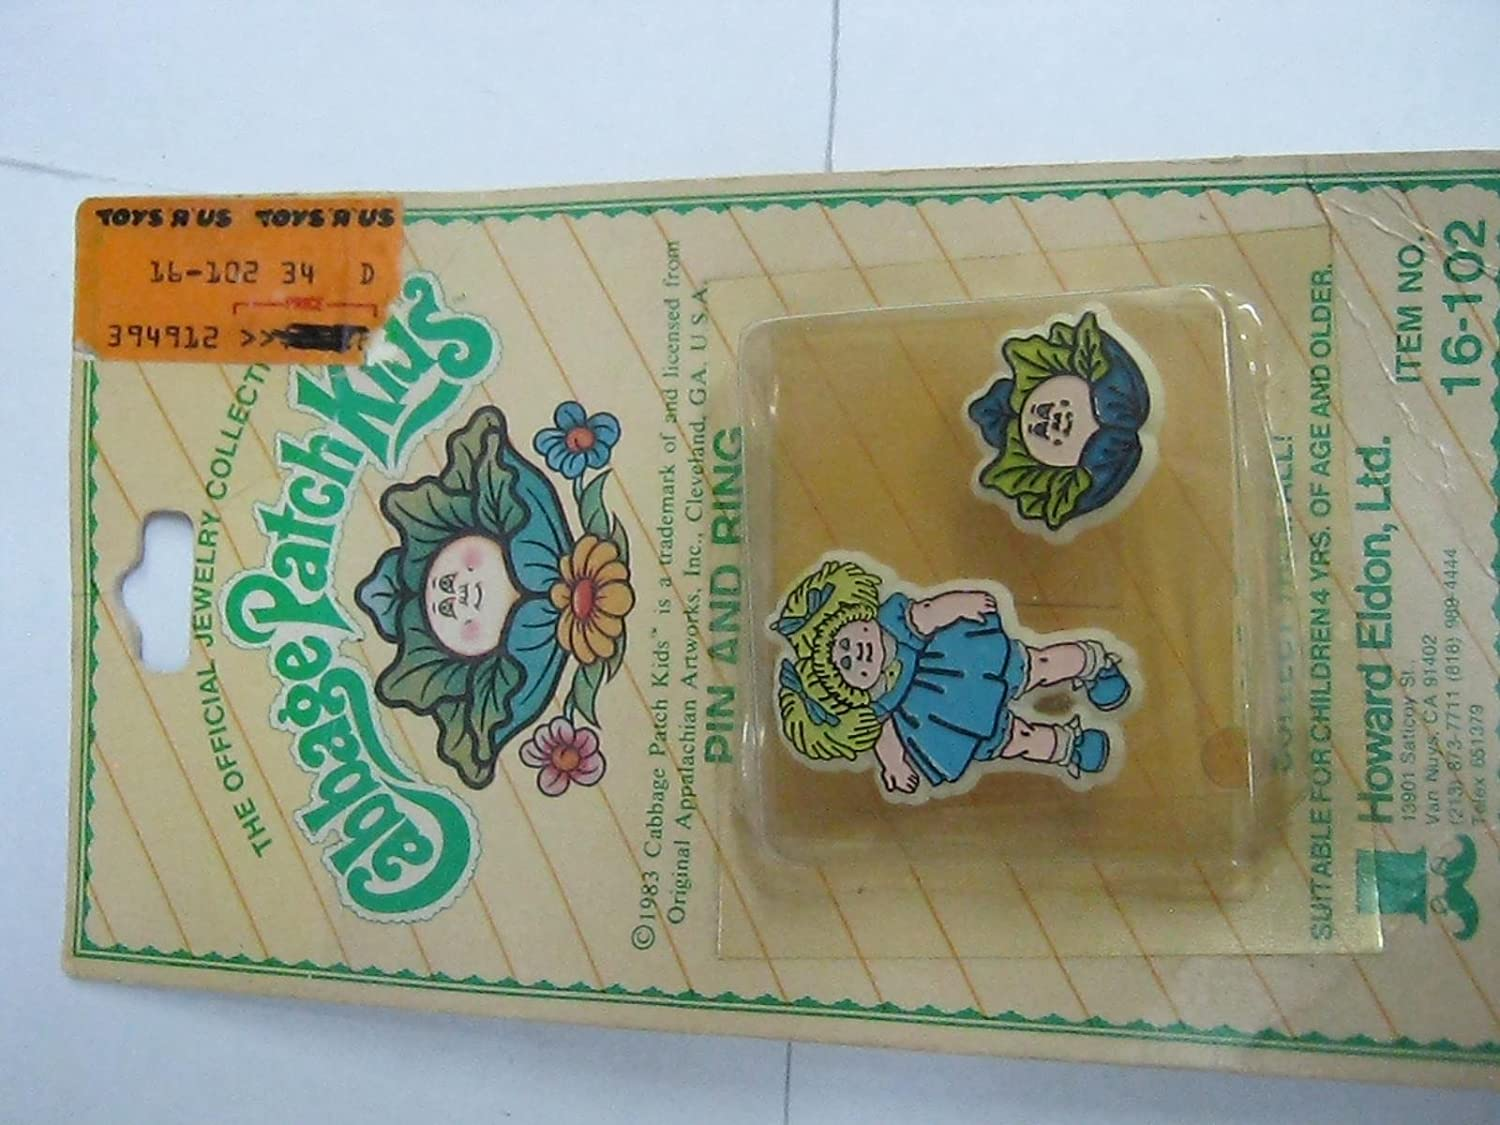 8c8e7d2fe977 Amazon.com  Cabbage patch kids pin and ring  Toys   Games